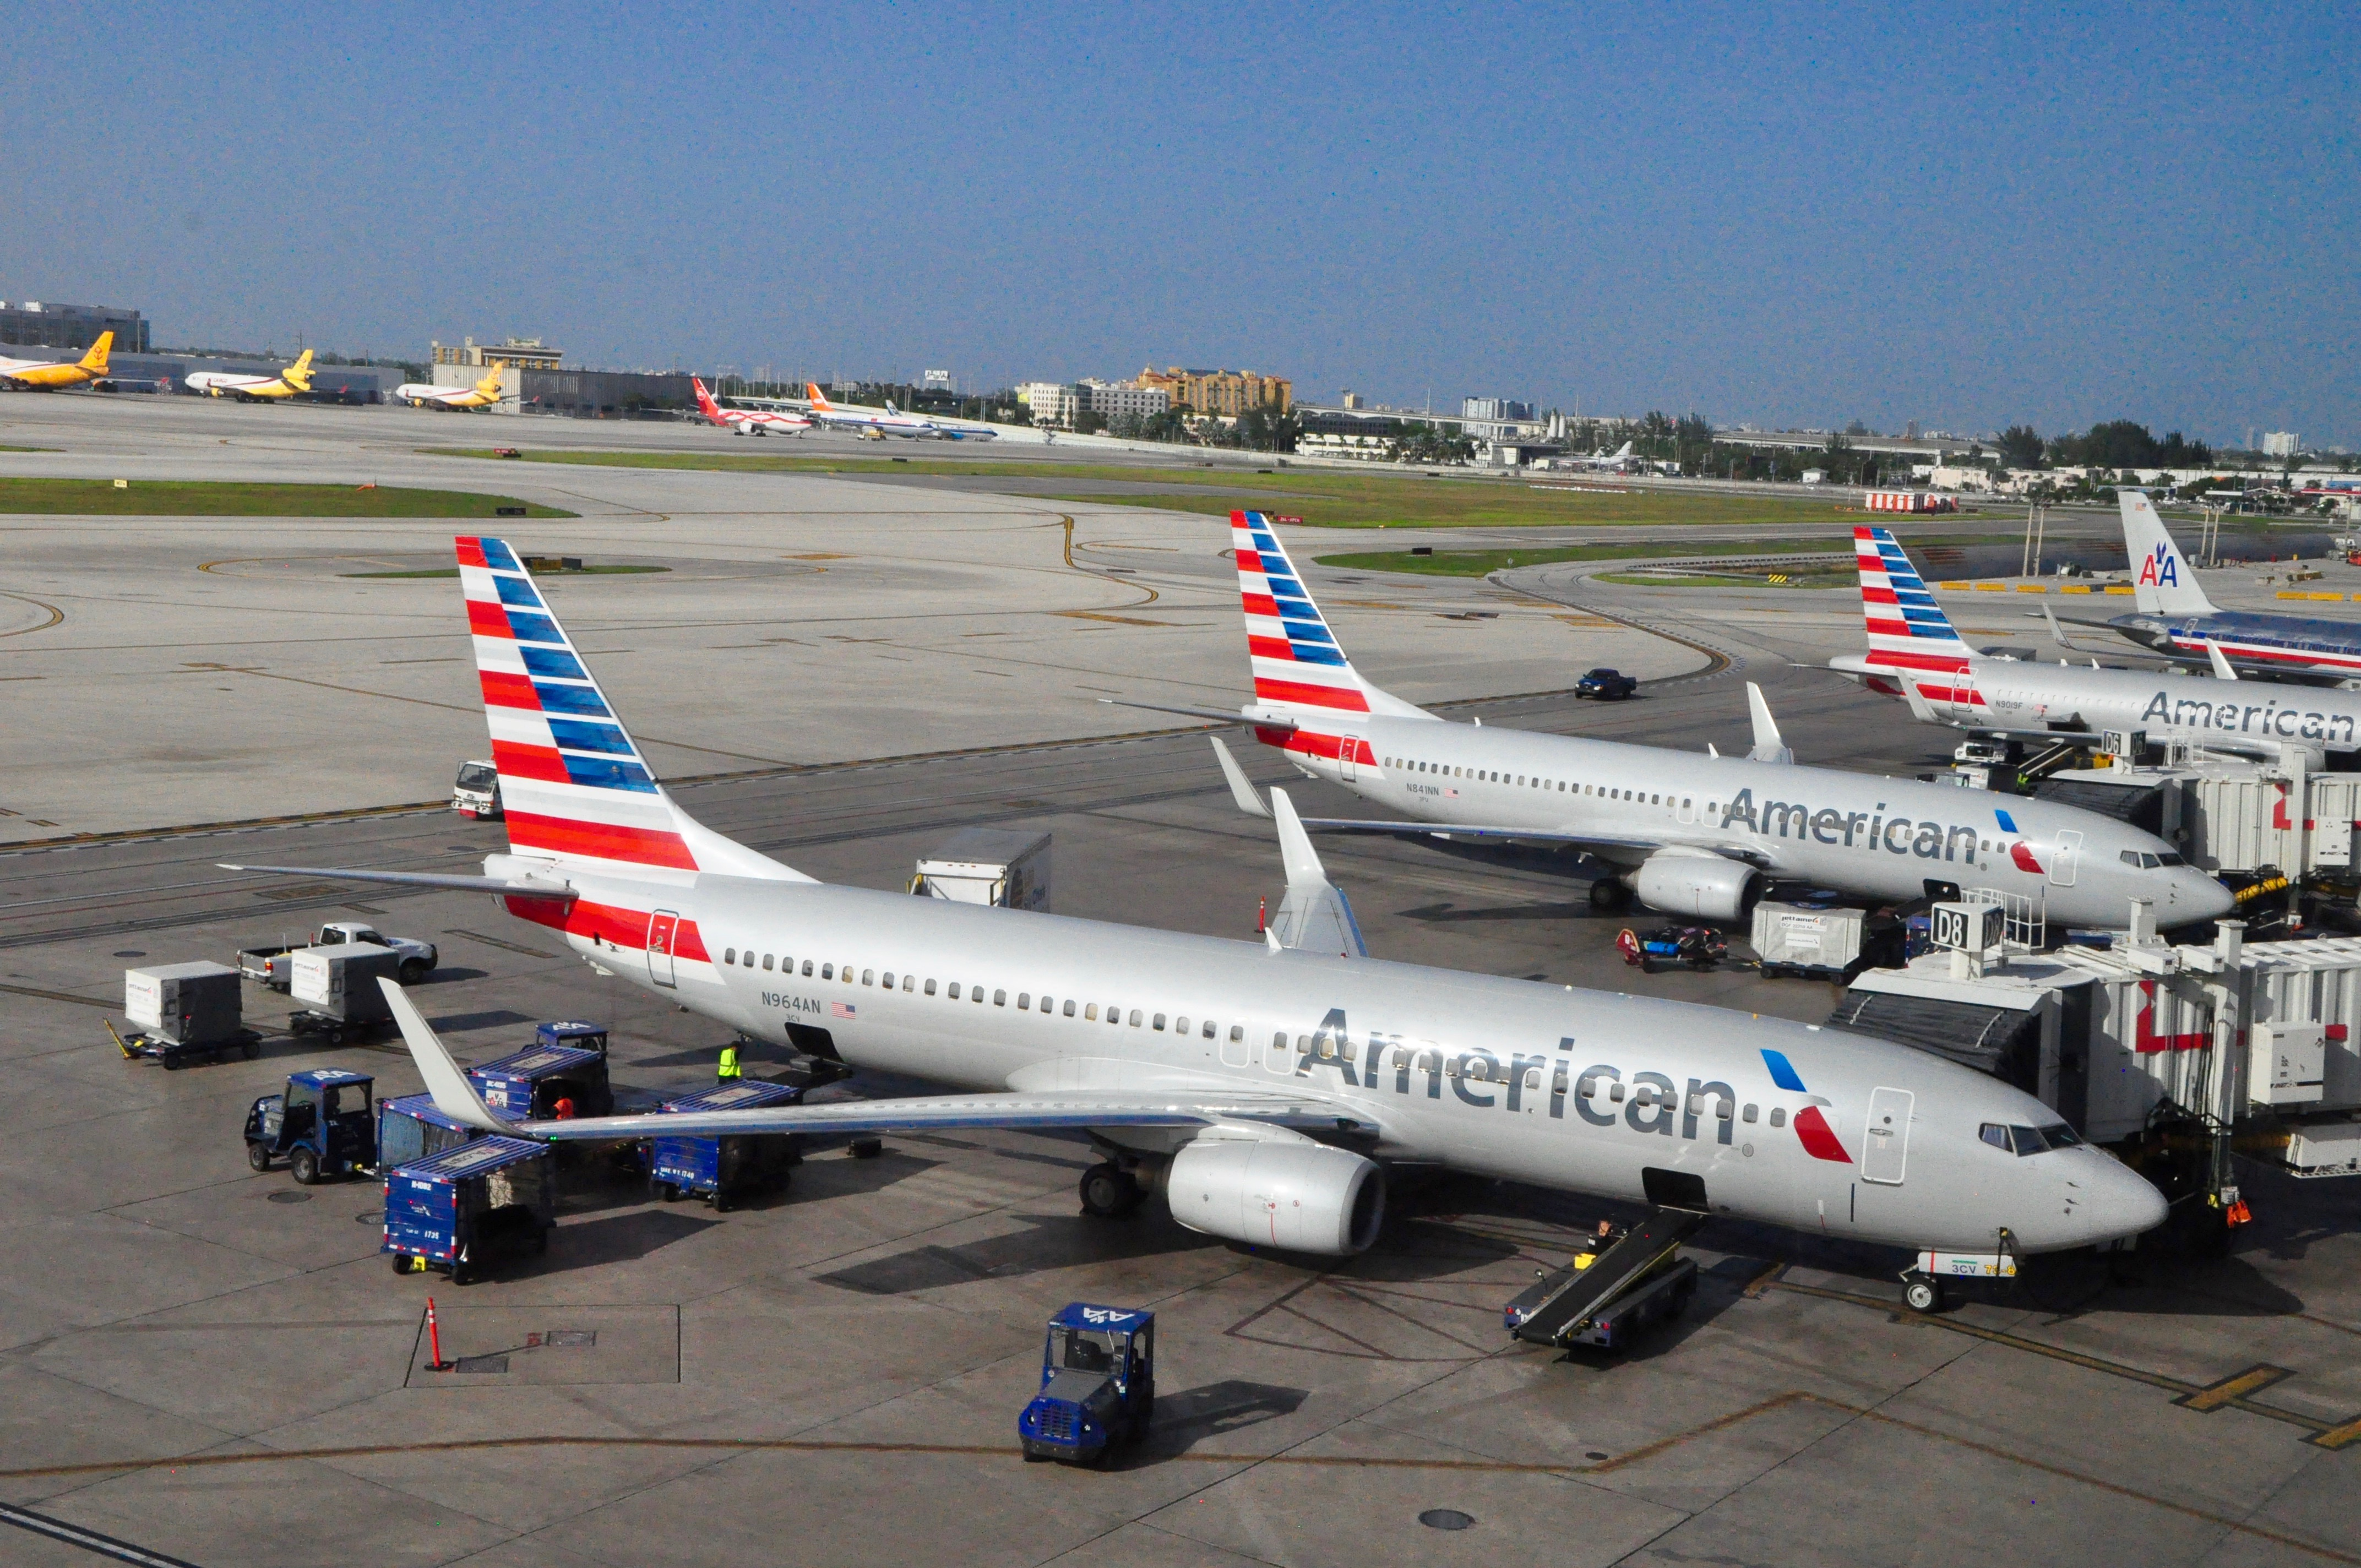 U.S. lawmakers expected to back $15 billion in airlines payroll assistance